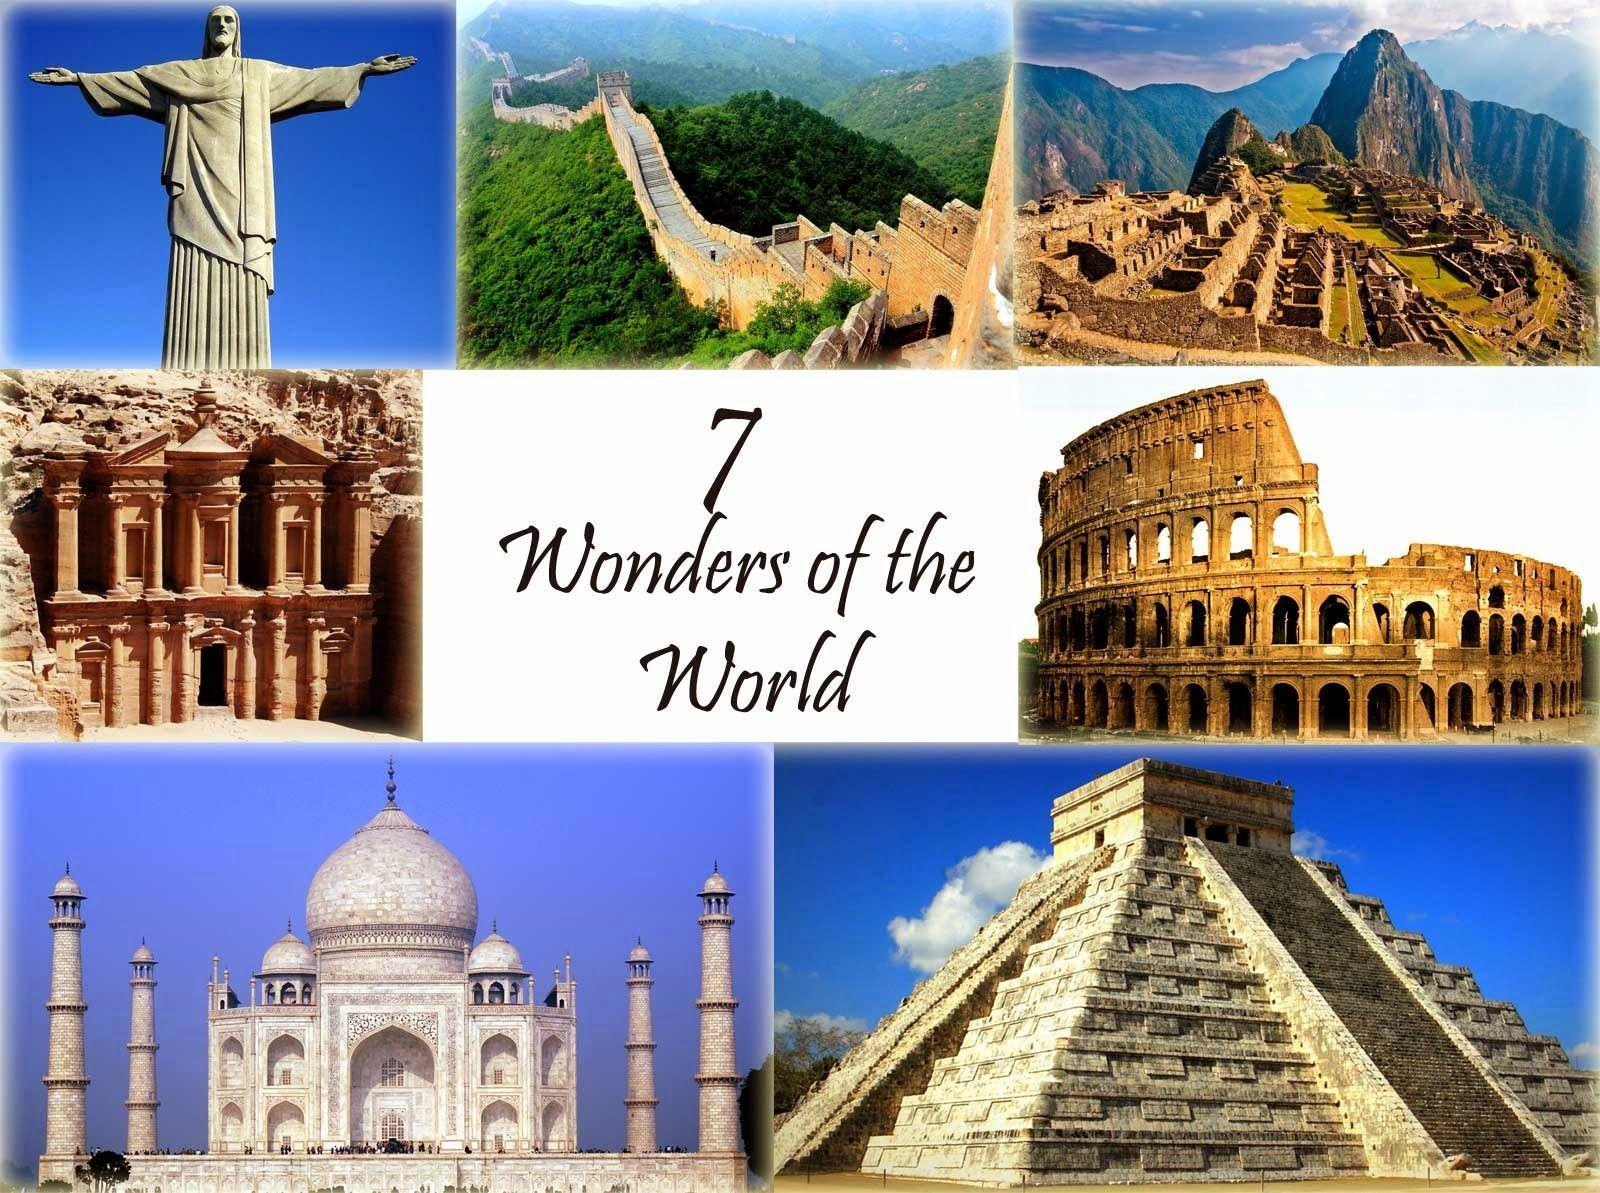 7 wonders of the world images download